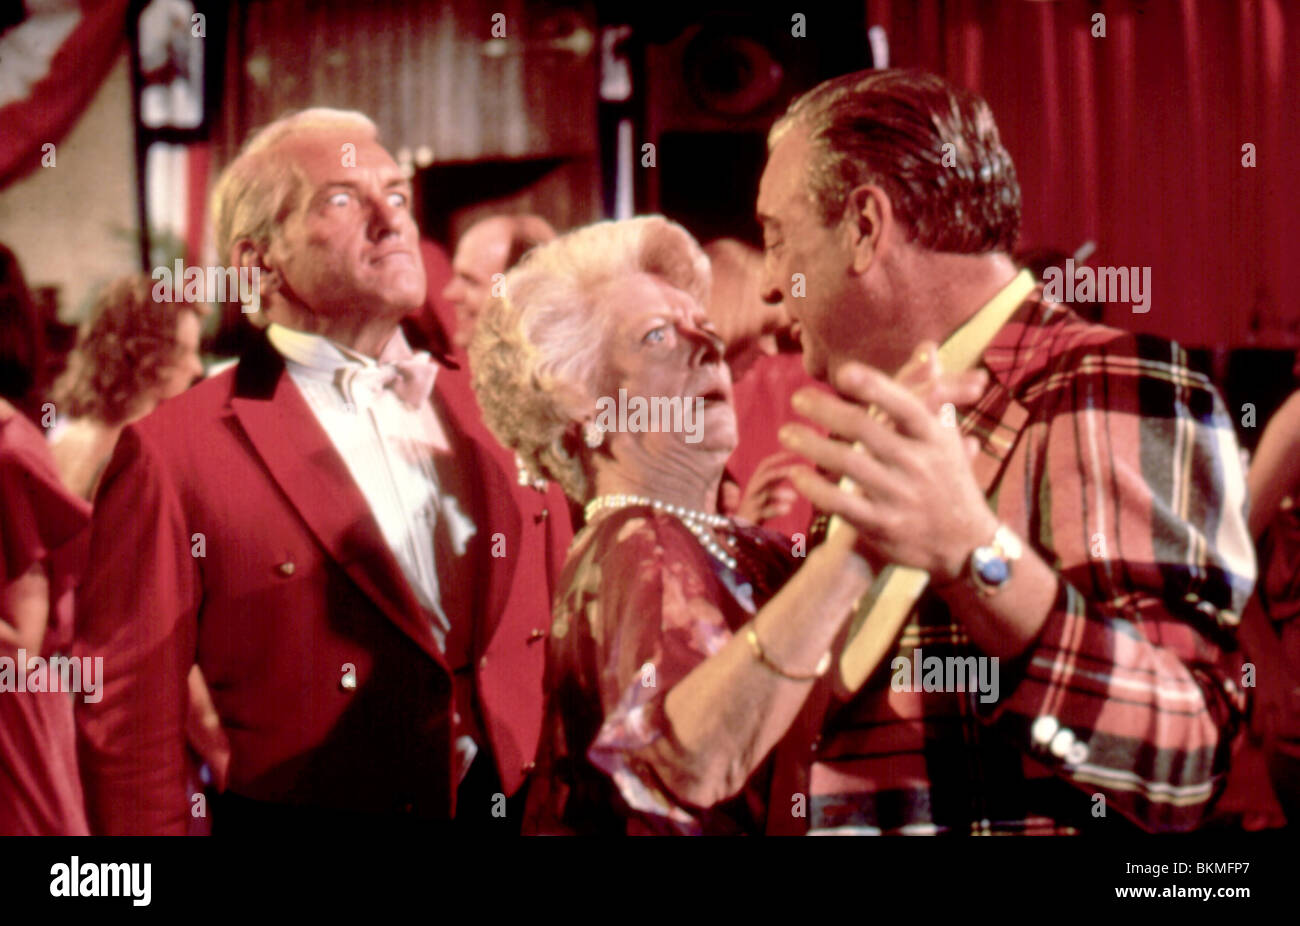 CADDYSHACK (1980) TED KNIGHT, RODNEY DANGERFIELD CDS 004 L - Stock Image